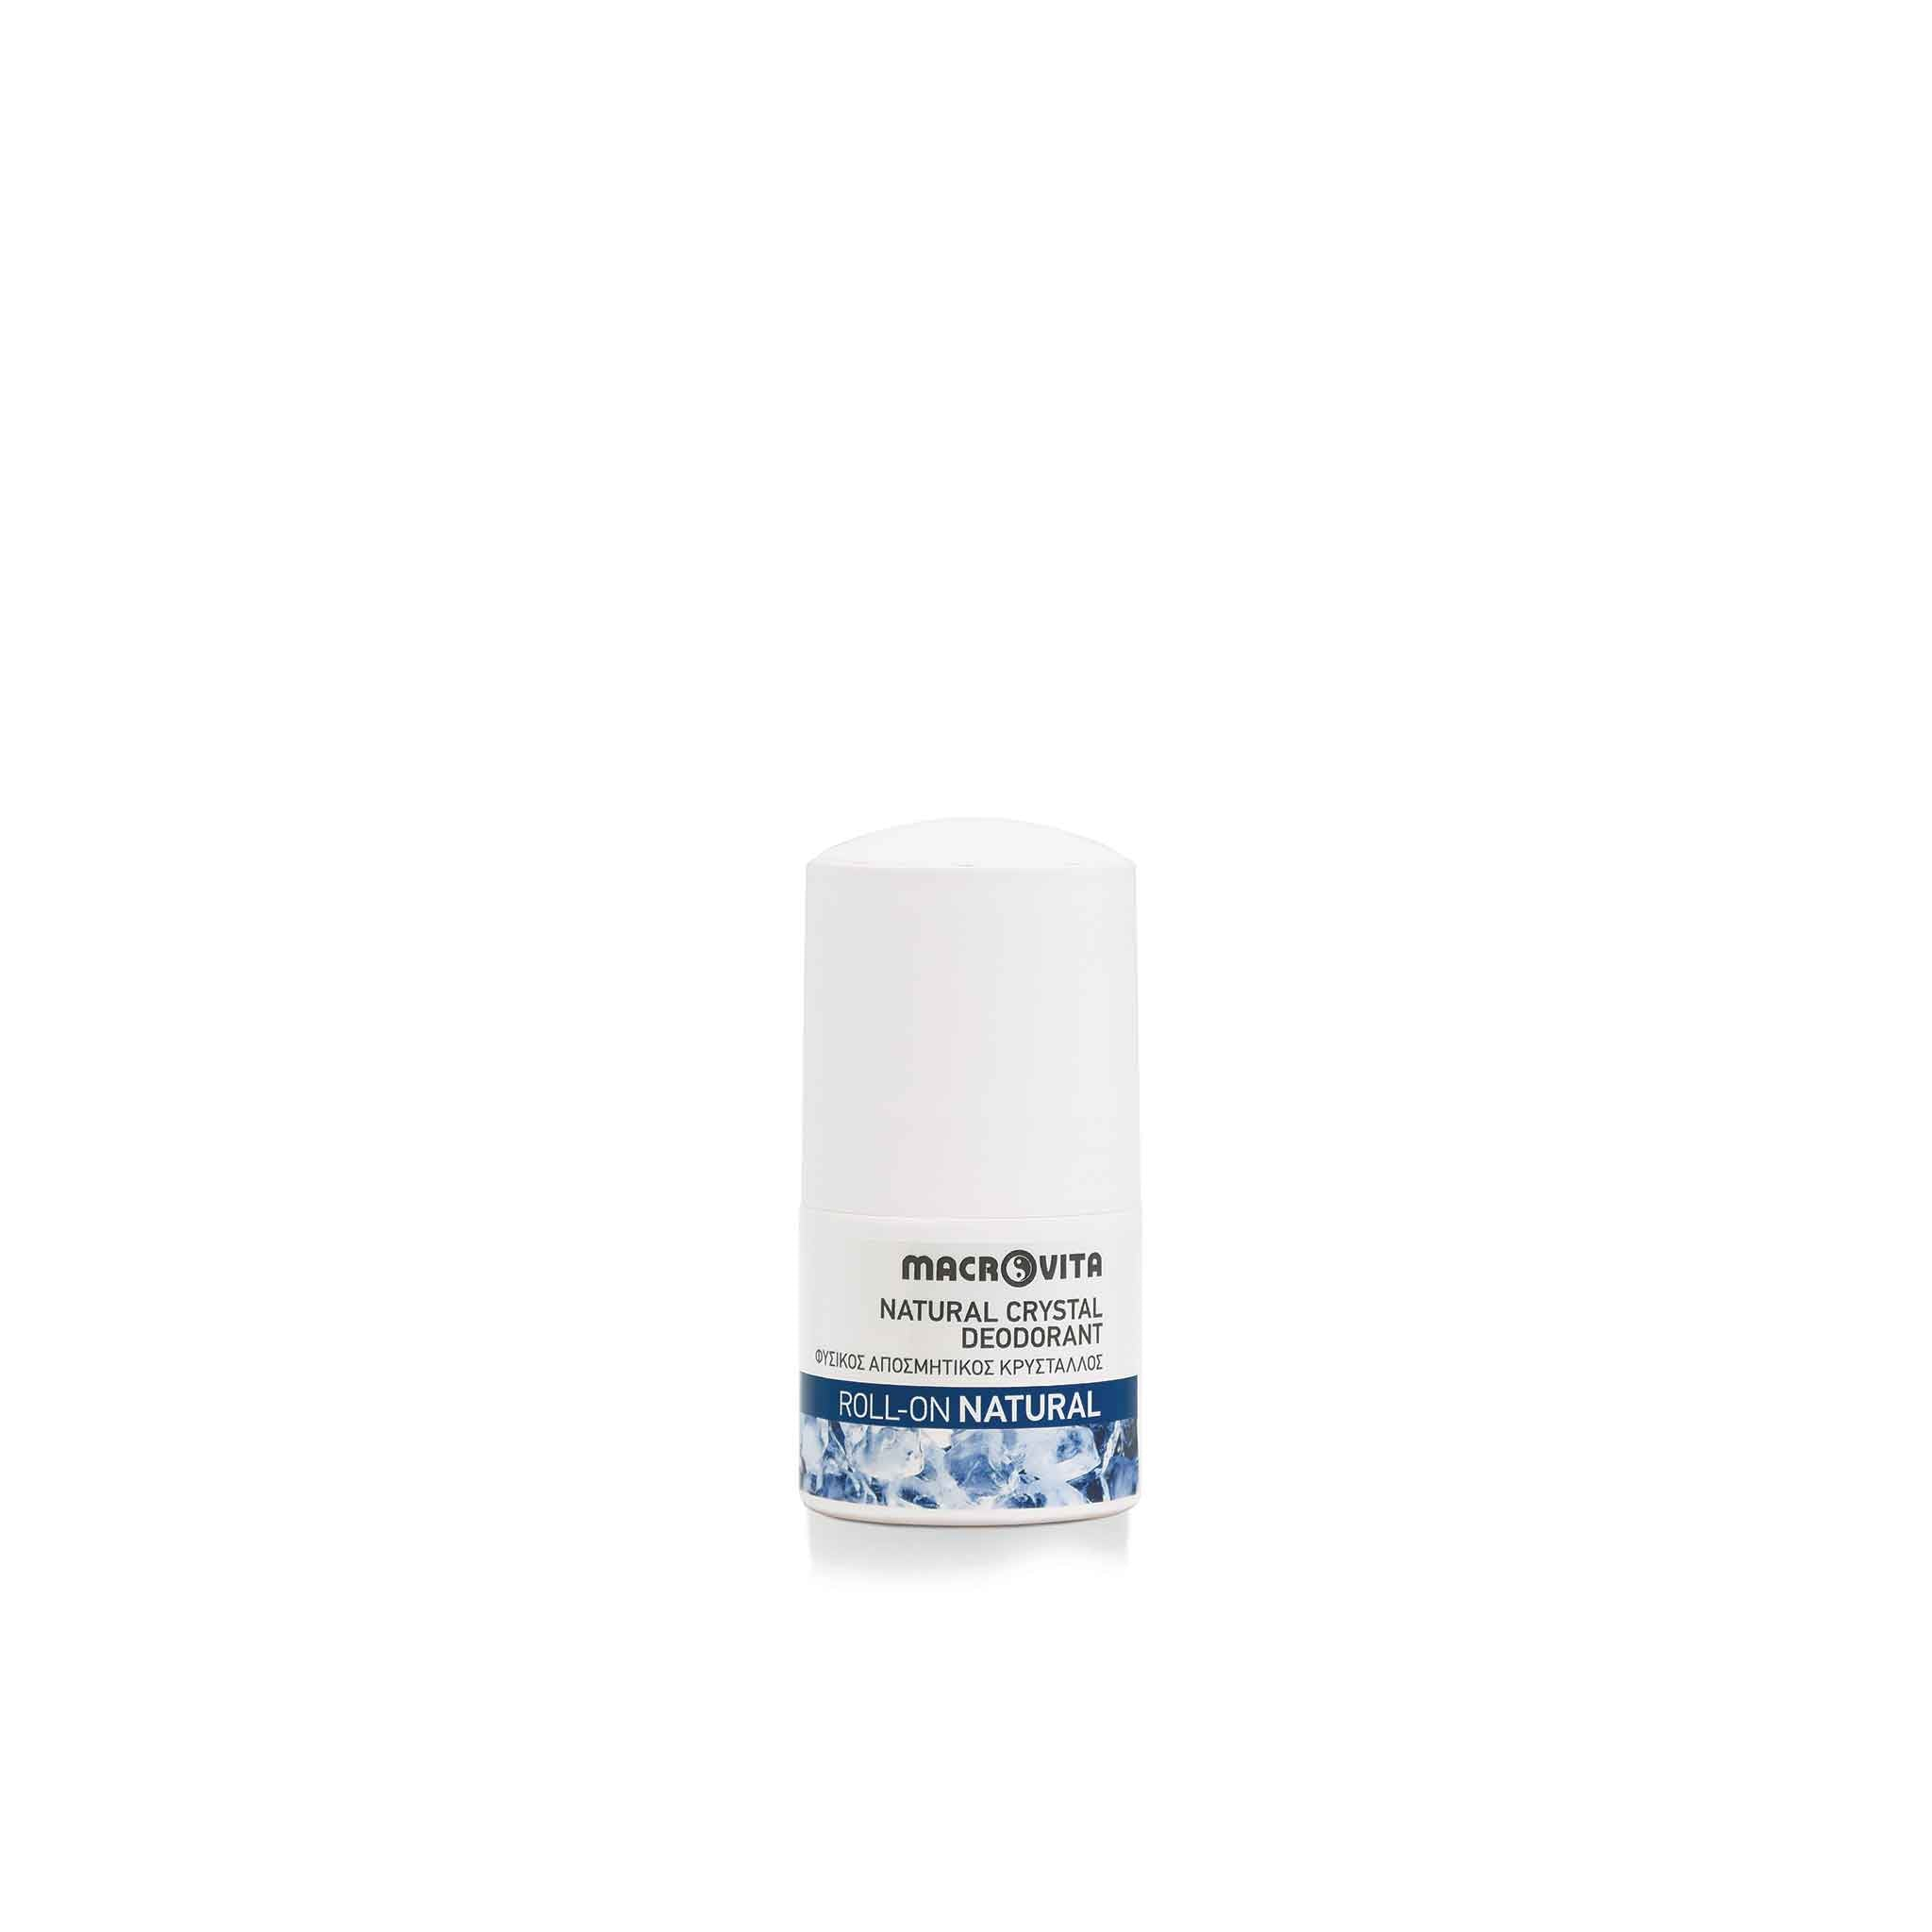 MACROVITA NATURAL DEODORANT ROLL-ON